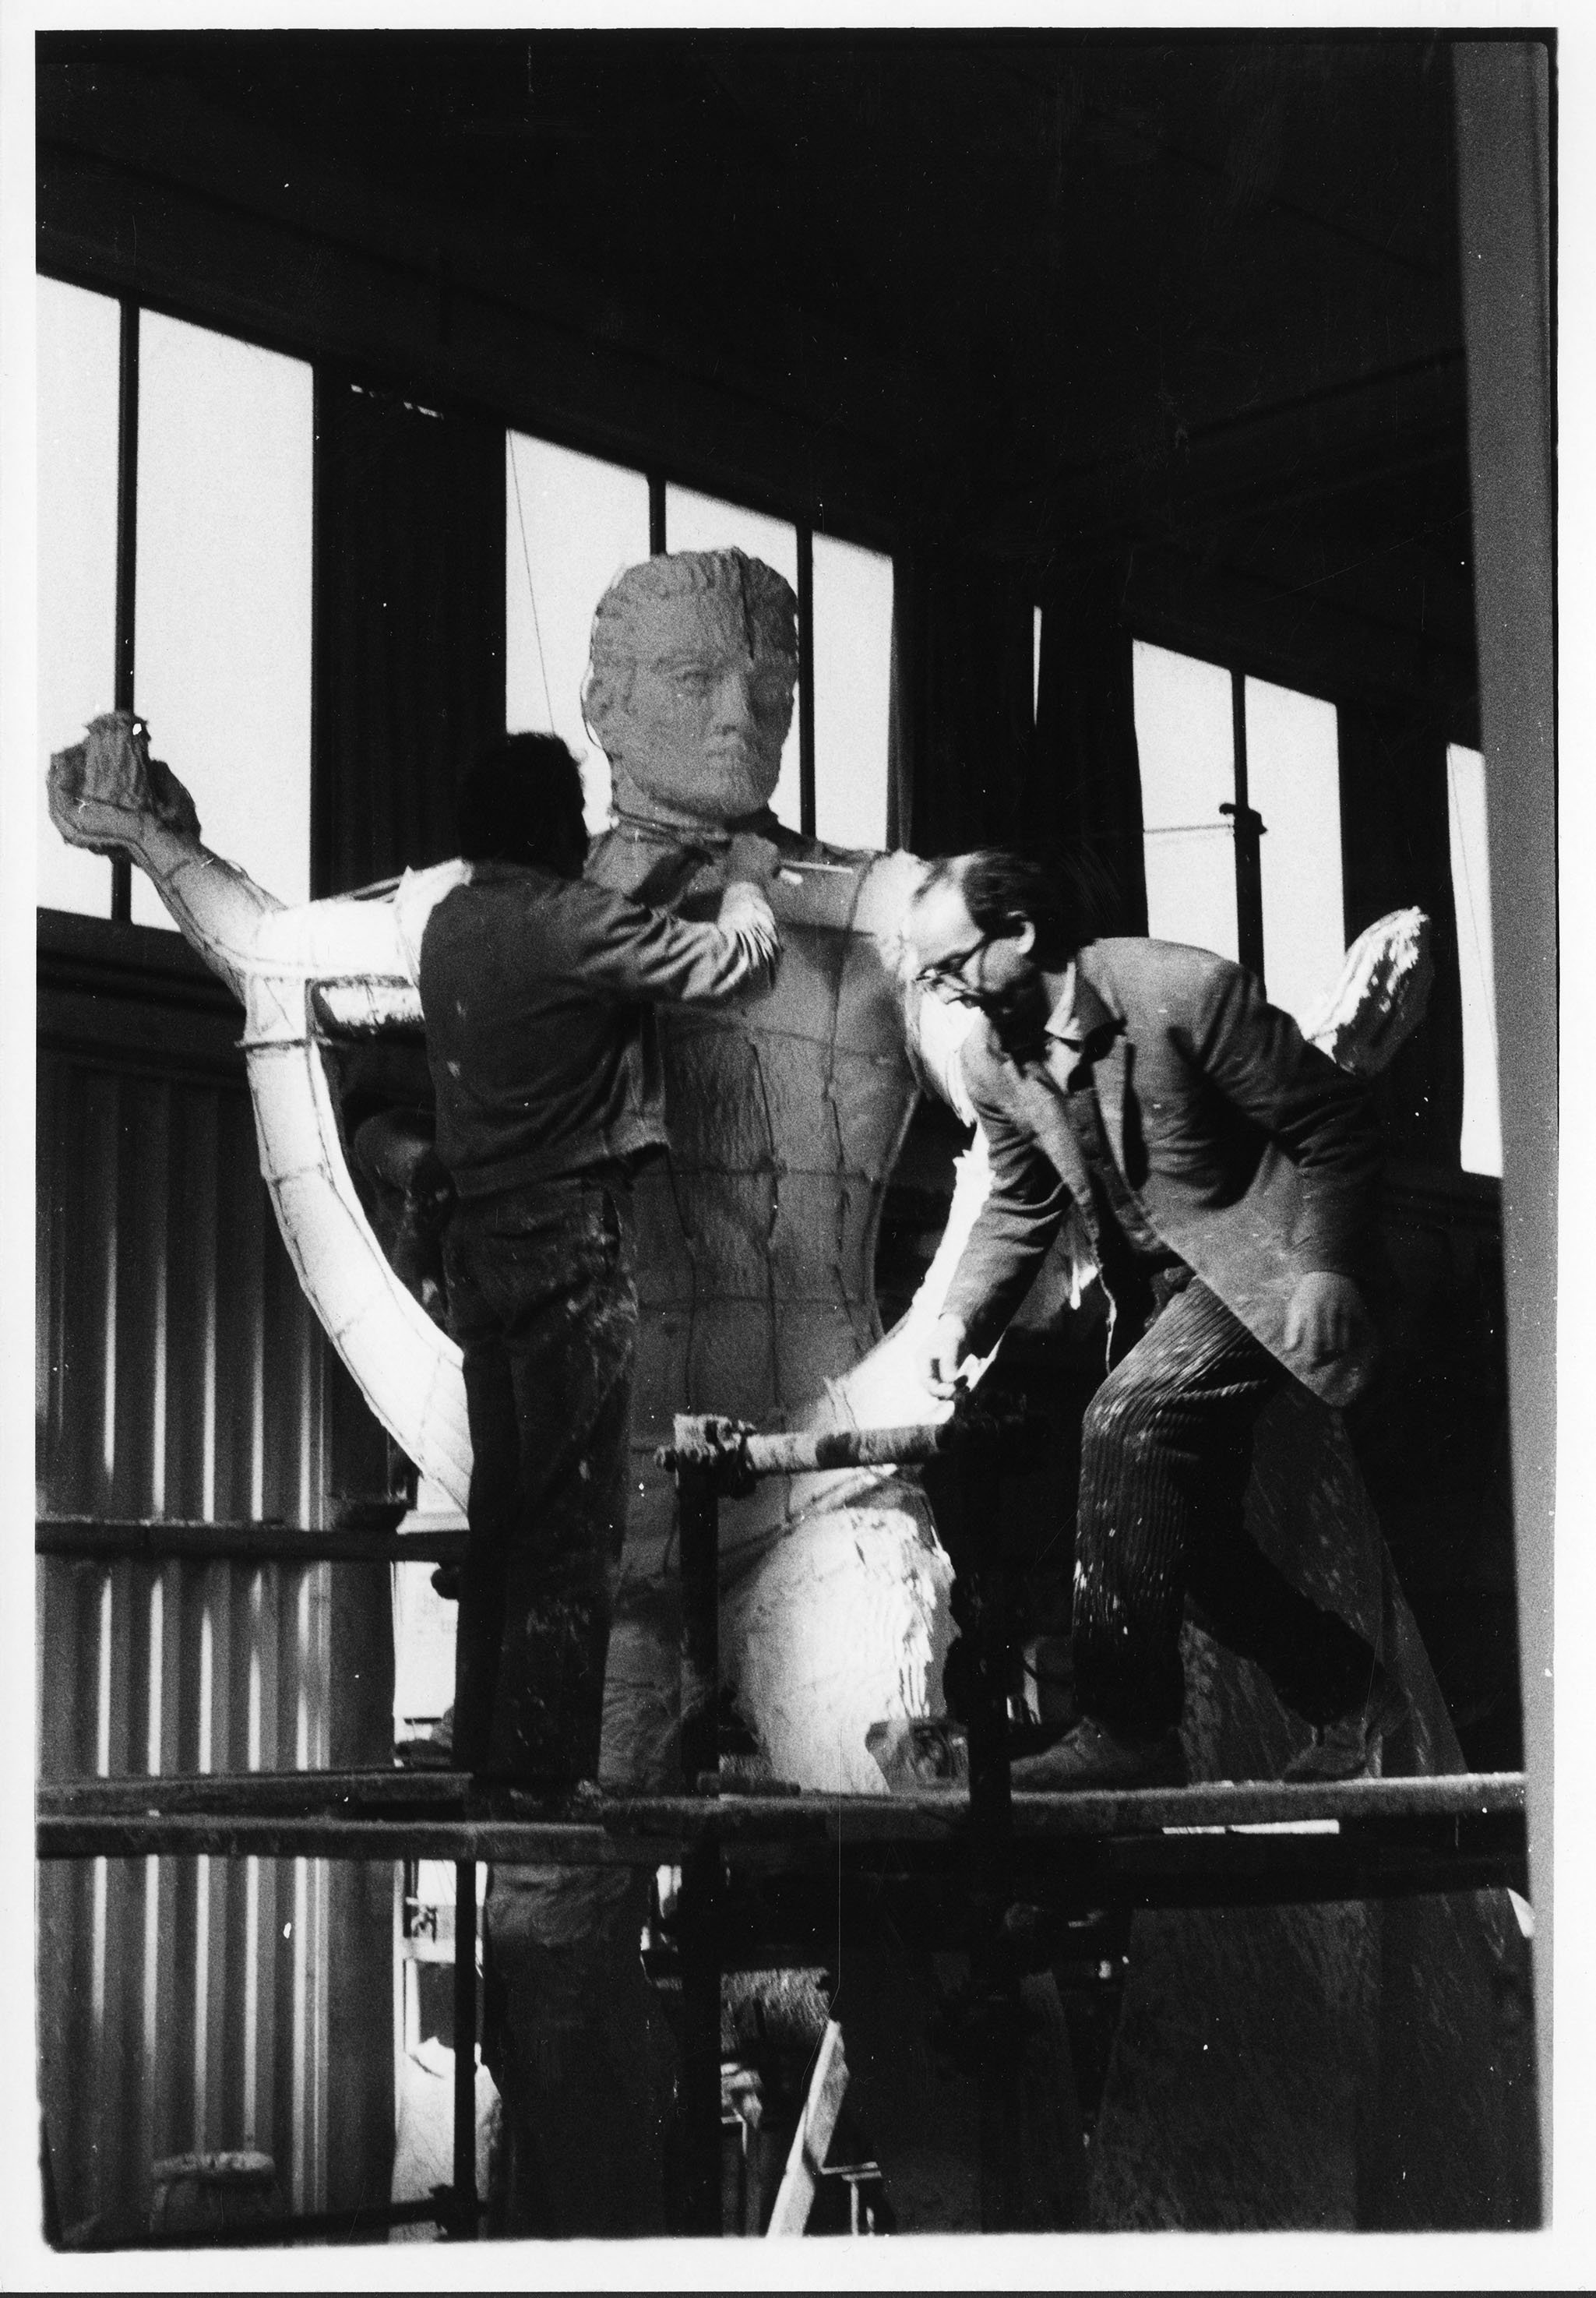 Felix De Weldon with Centennial Man during Construction in Rome. EKU Photograph Collection